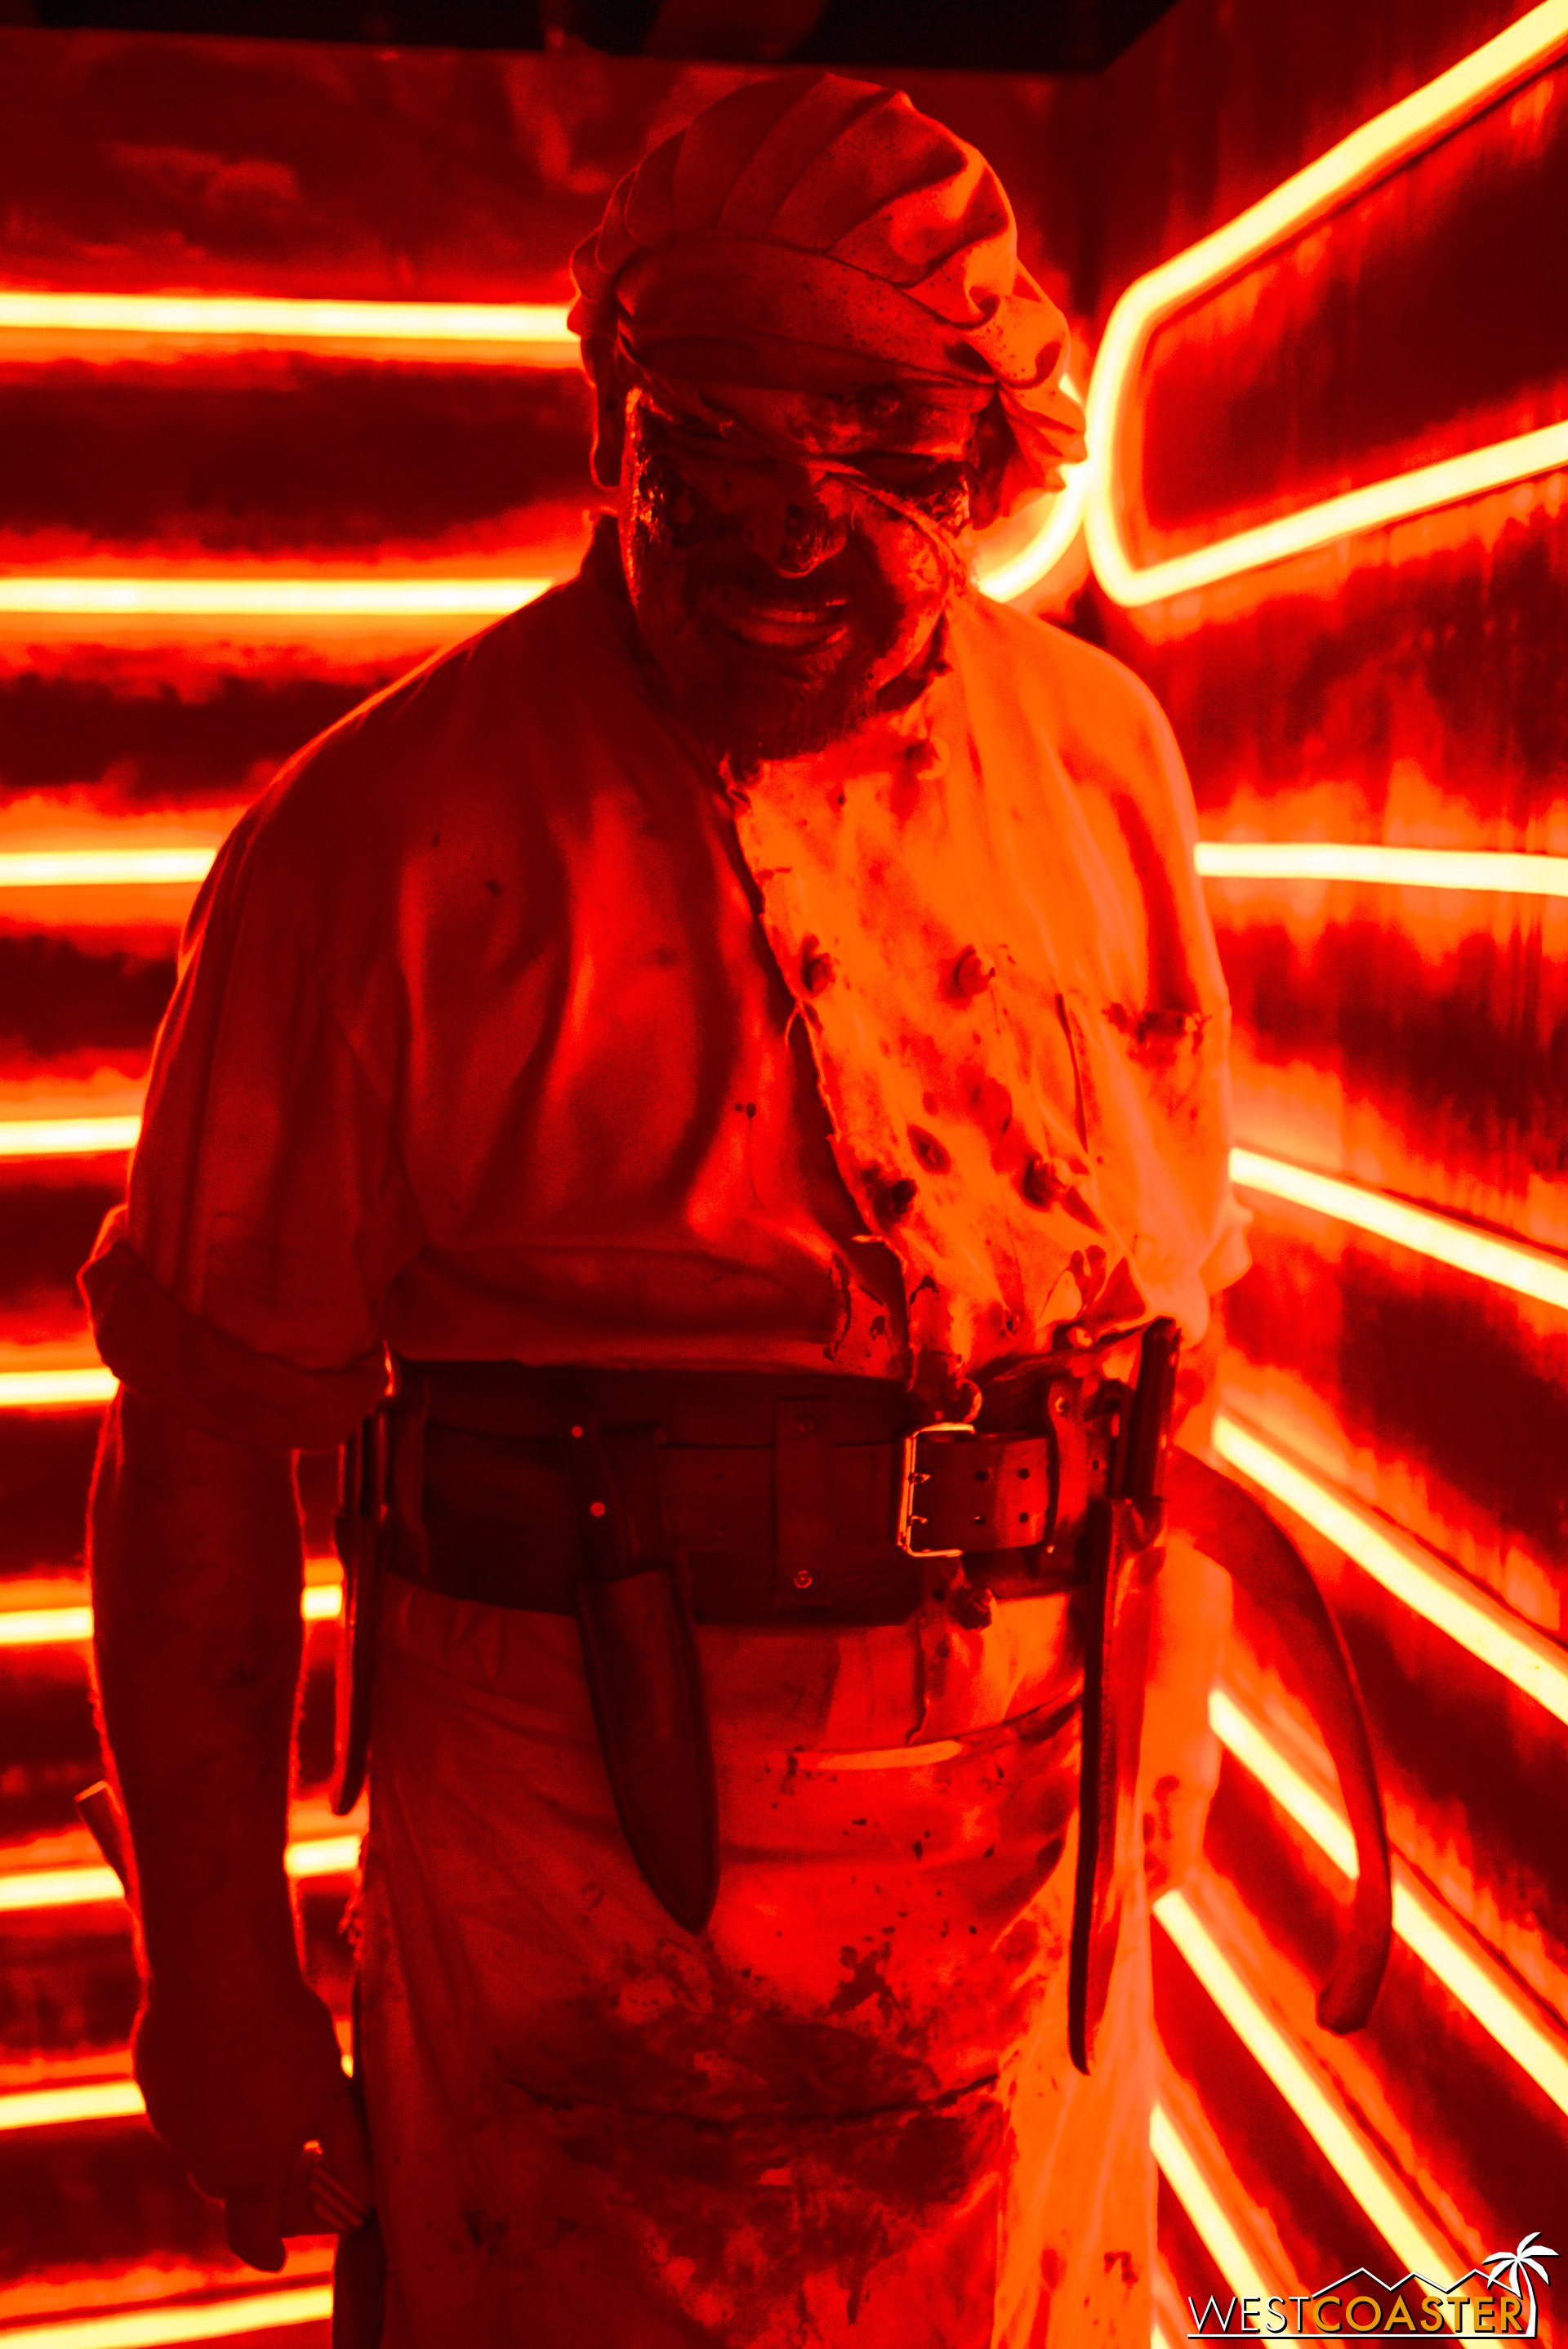 Dark Harbor has cooked up quite a production this year!